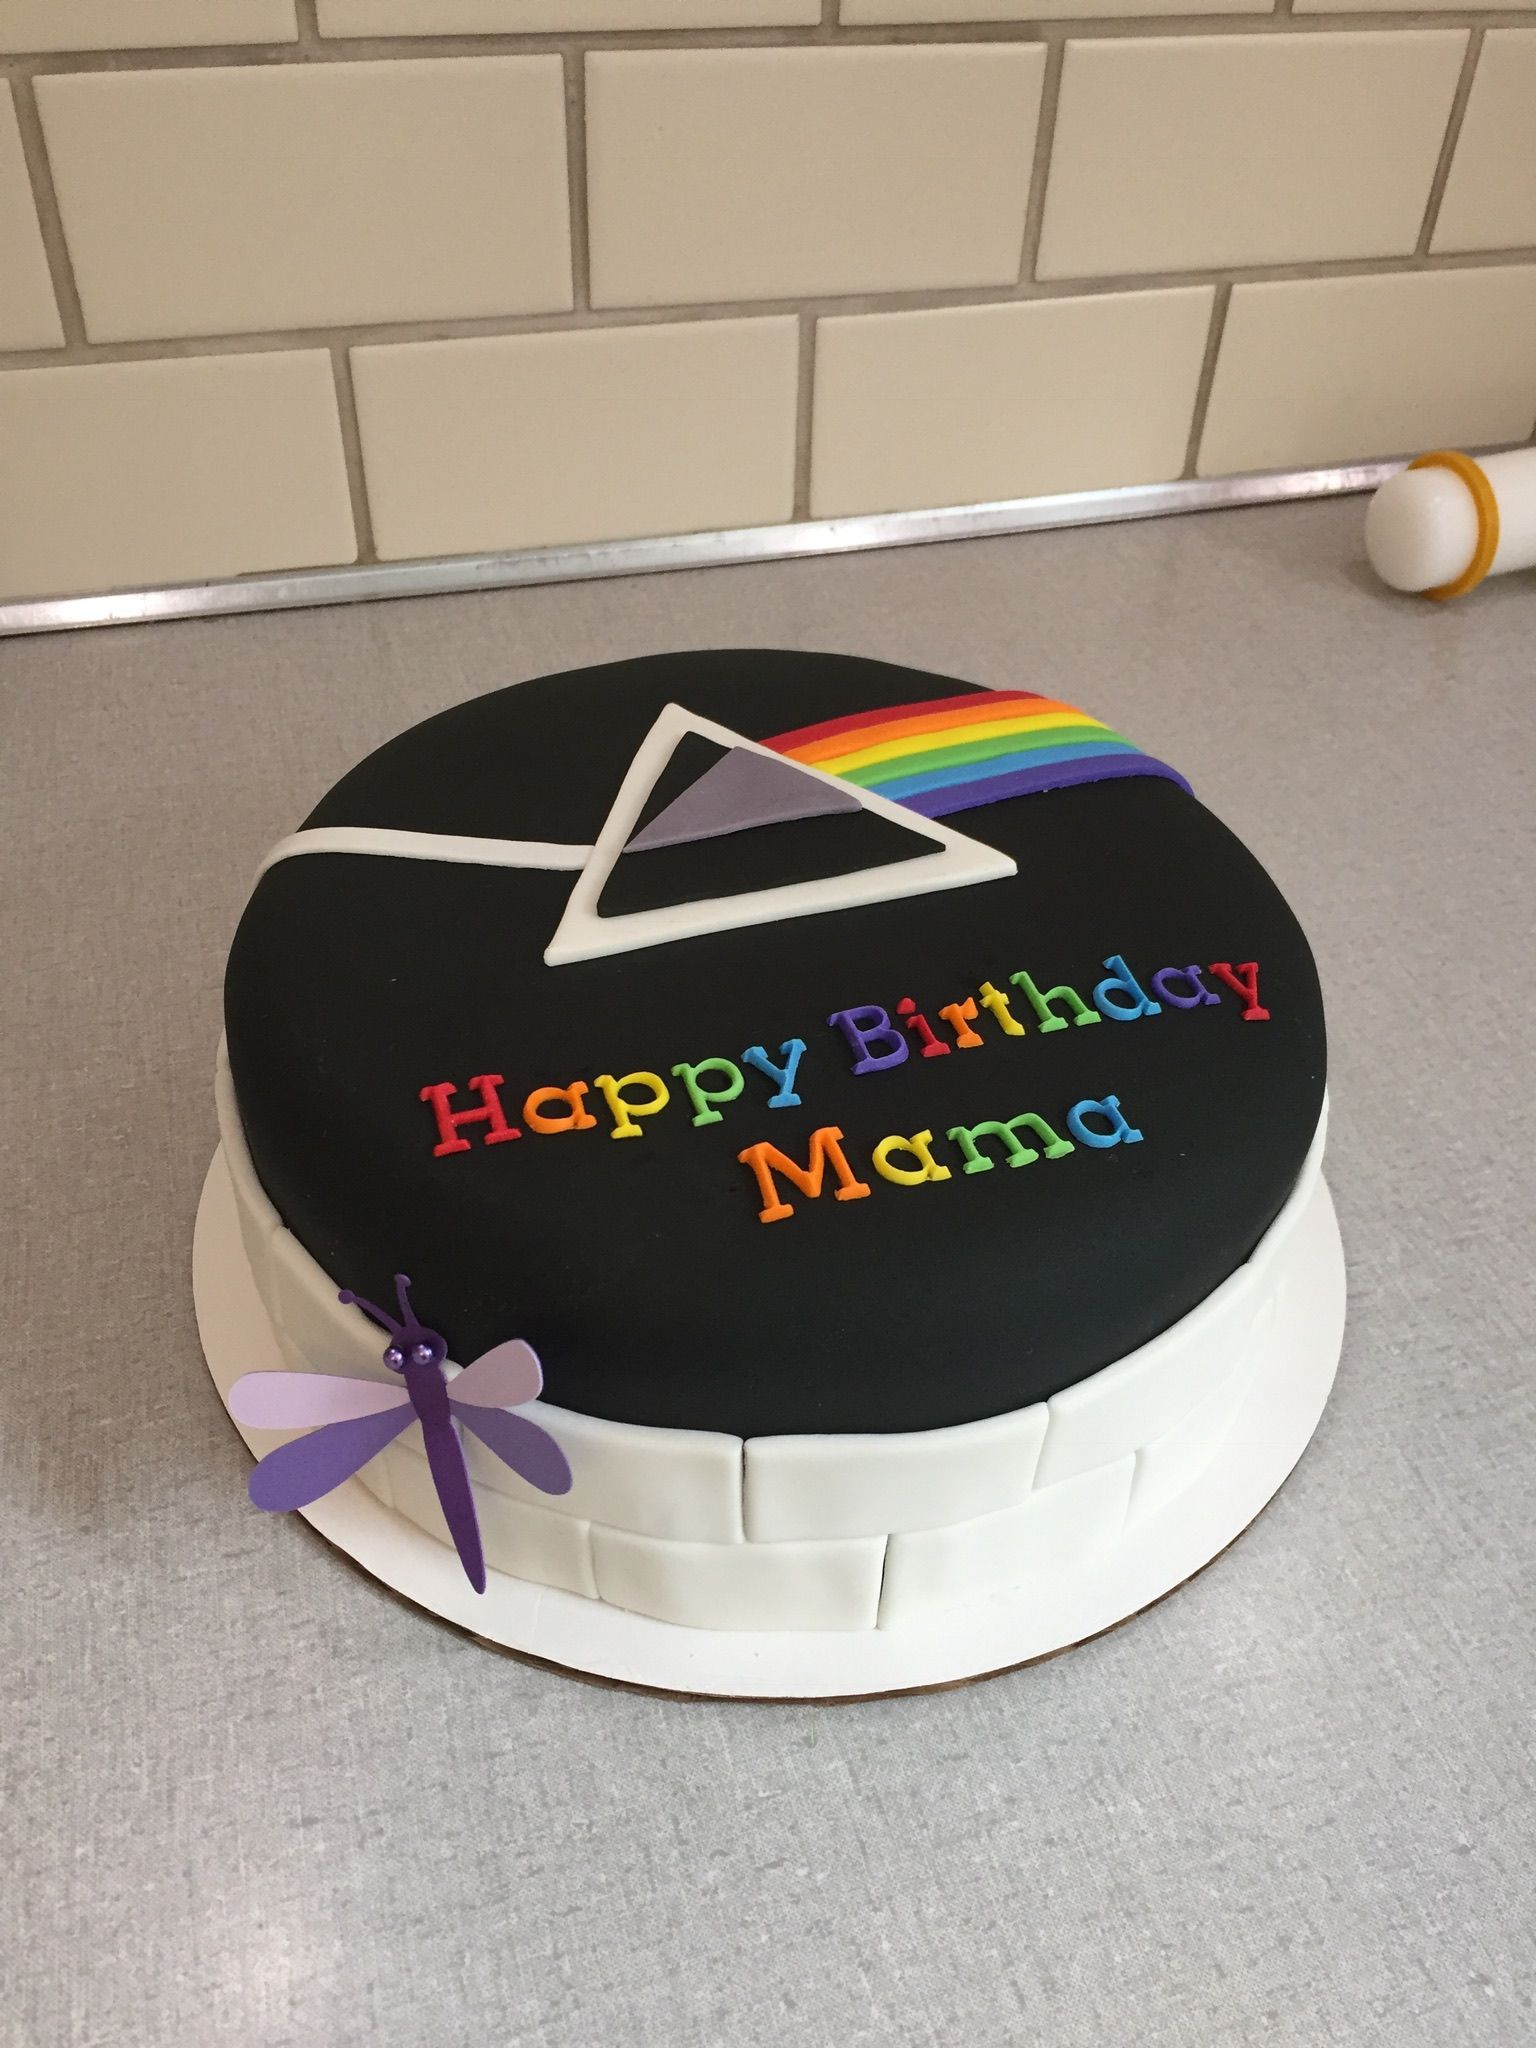 Pink Floyd Cake Dark Side Of The Moon Cake The Wall Cake Sarah S